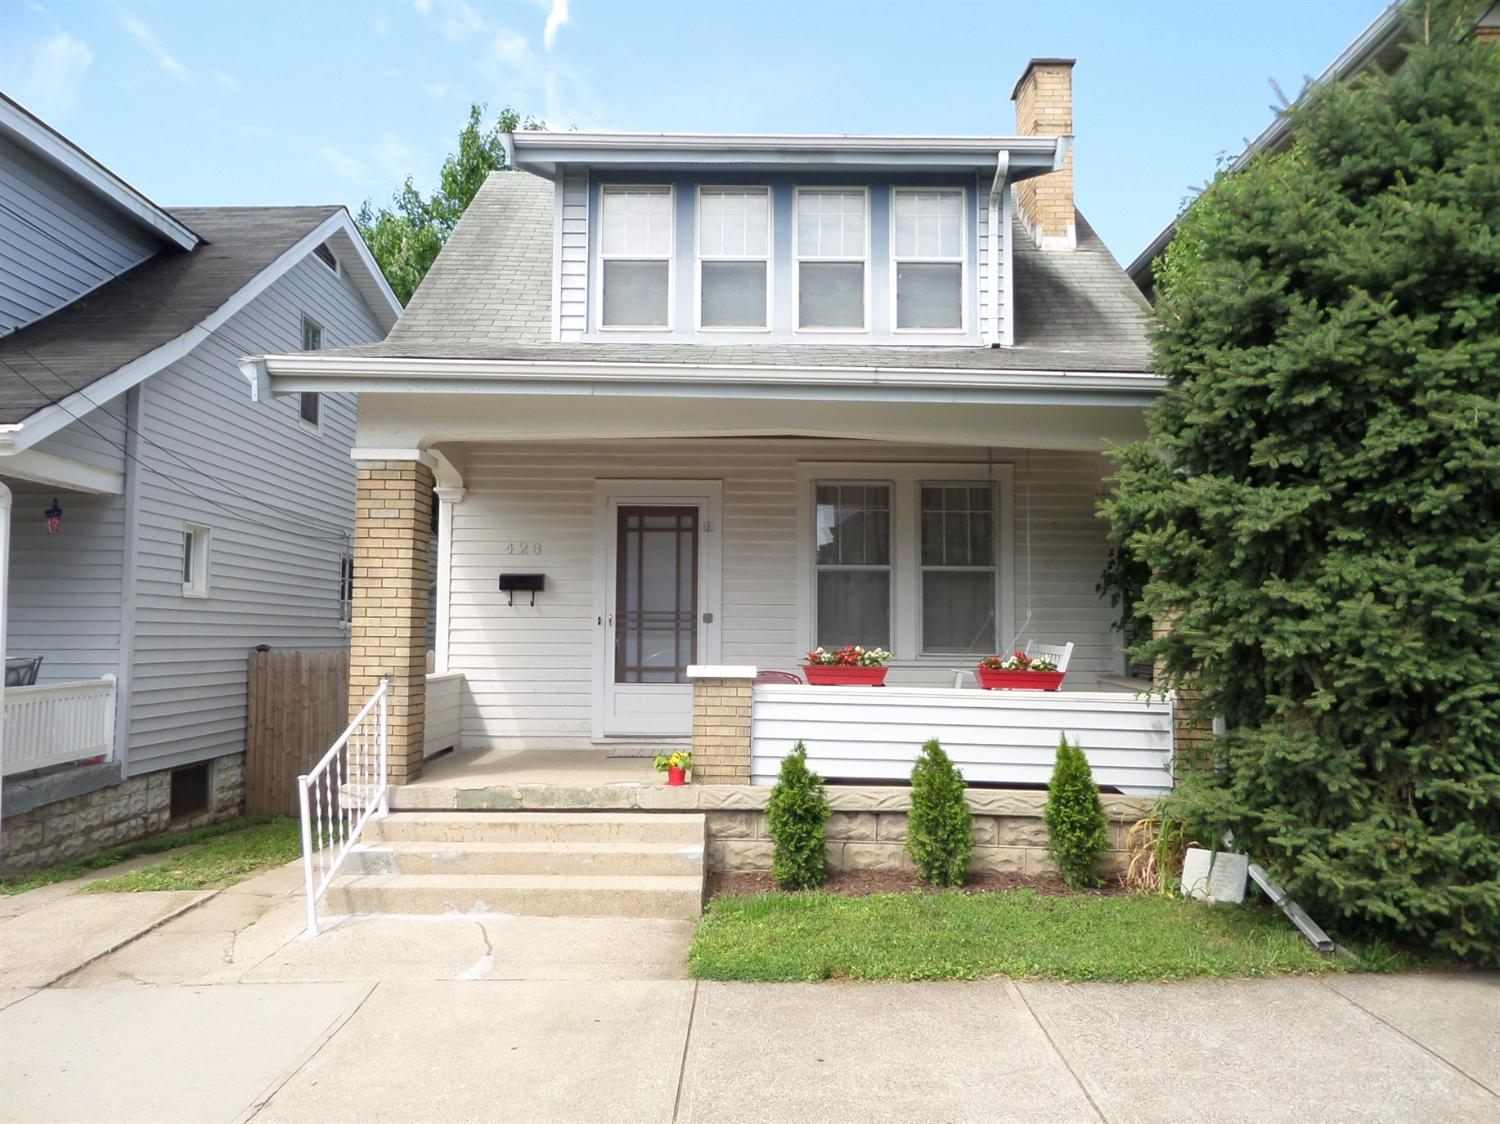 Photo 1 for 428 Clark St Bellevue, KY 41073